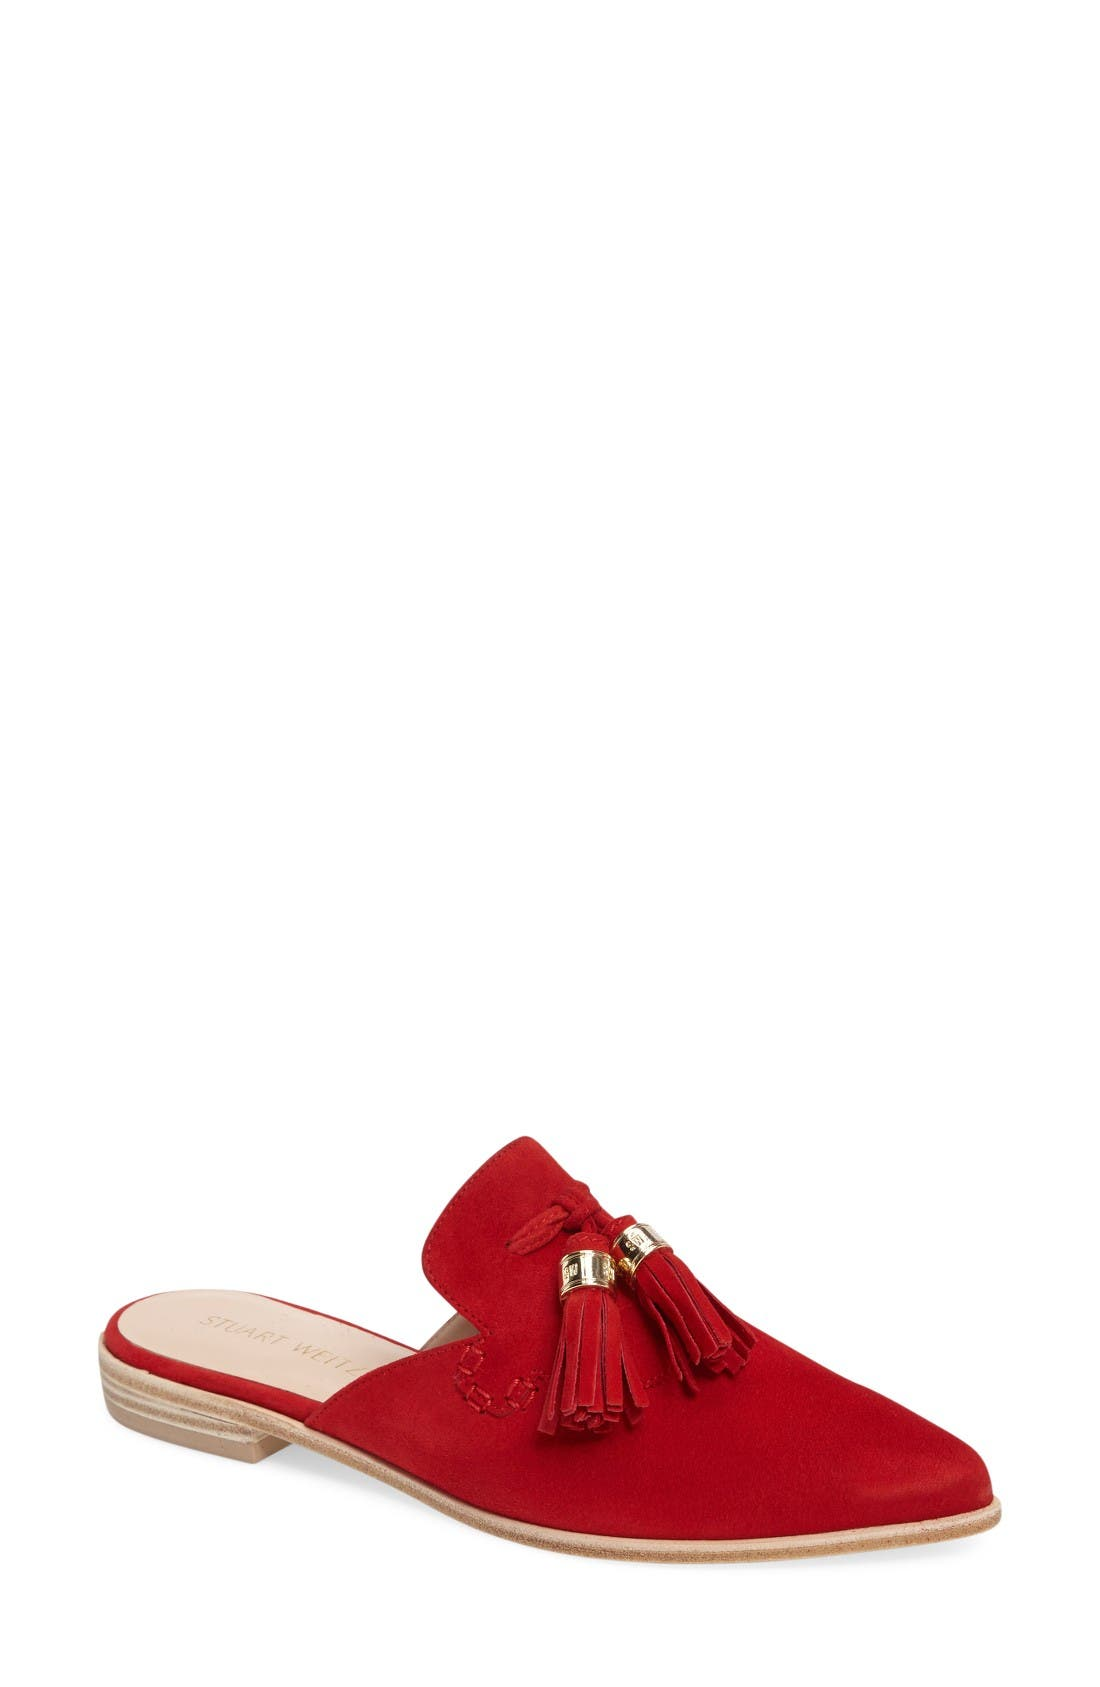 Alternate Image 1 Selected - Stuart Weitzman 'Slidealong' Slide Loafer (Women)